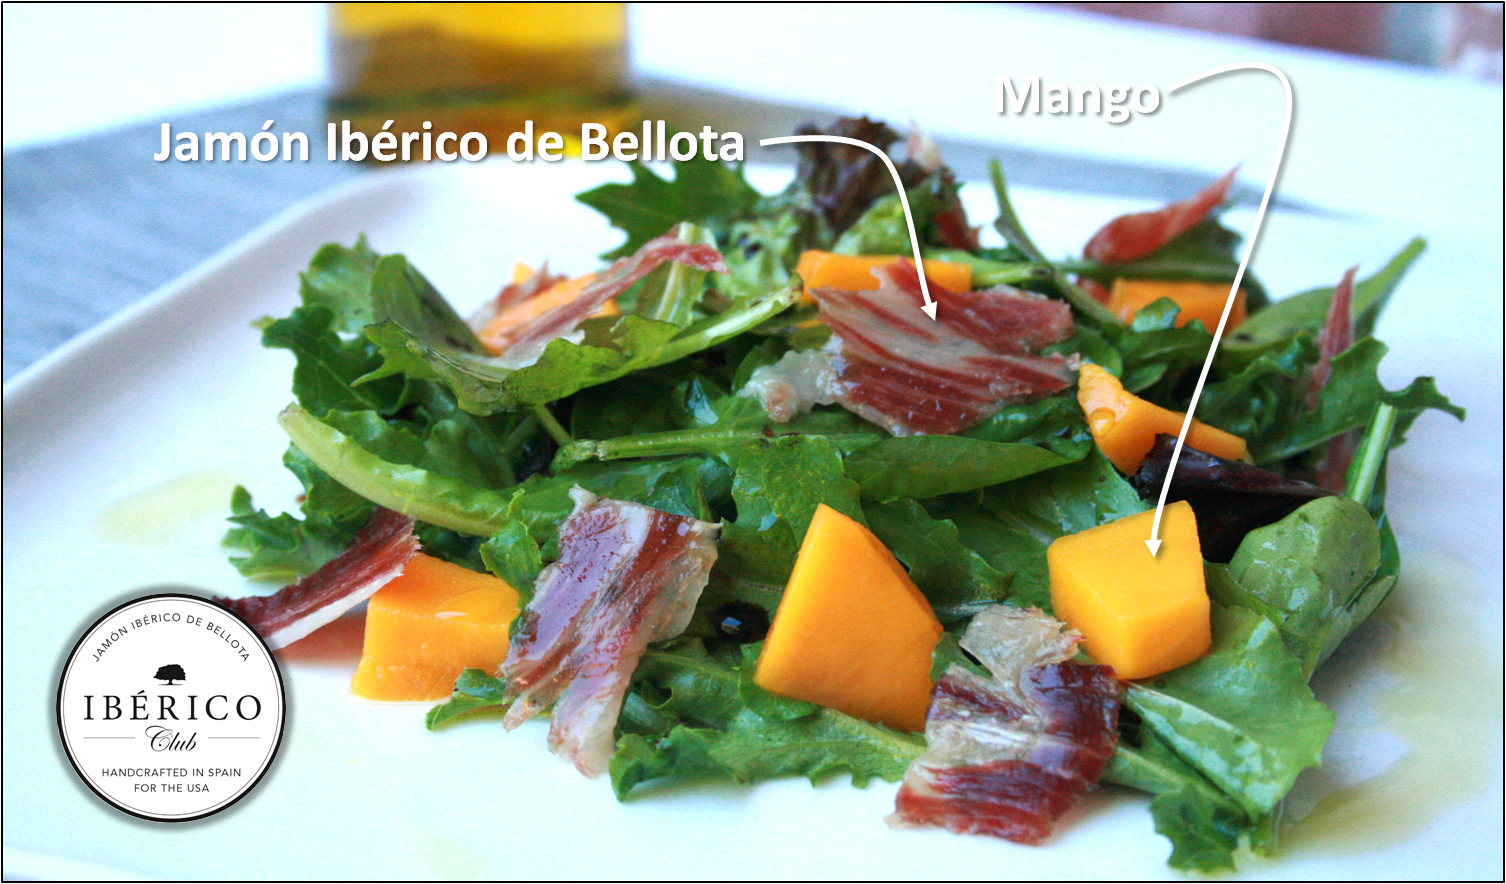 Jamón Ibérico Mango salad [Beautiful, Simple, Delicious]